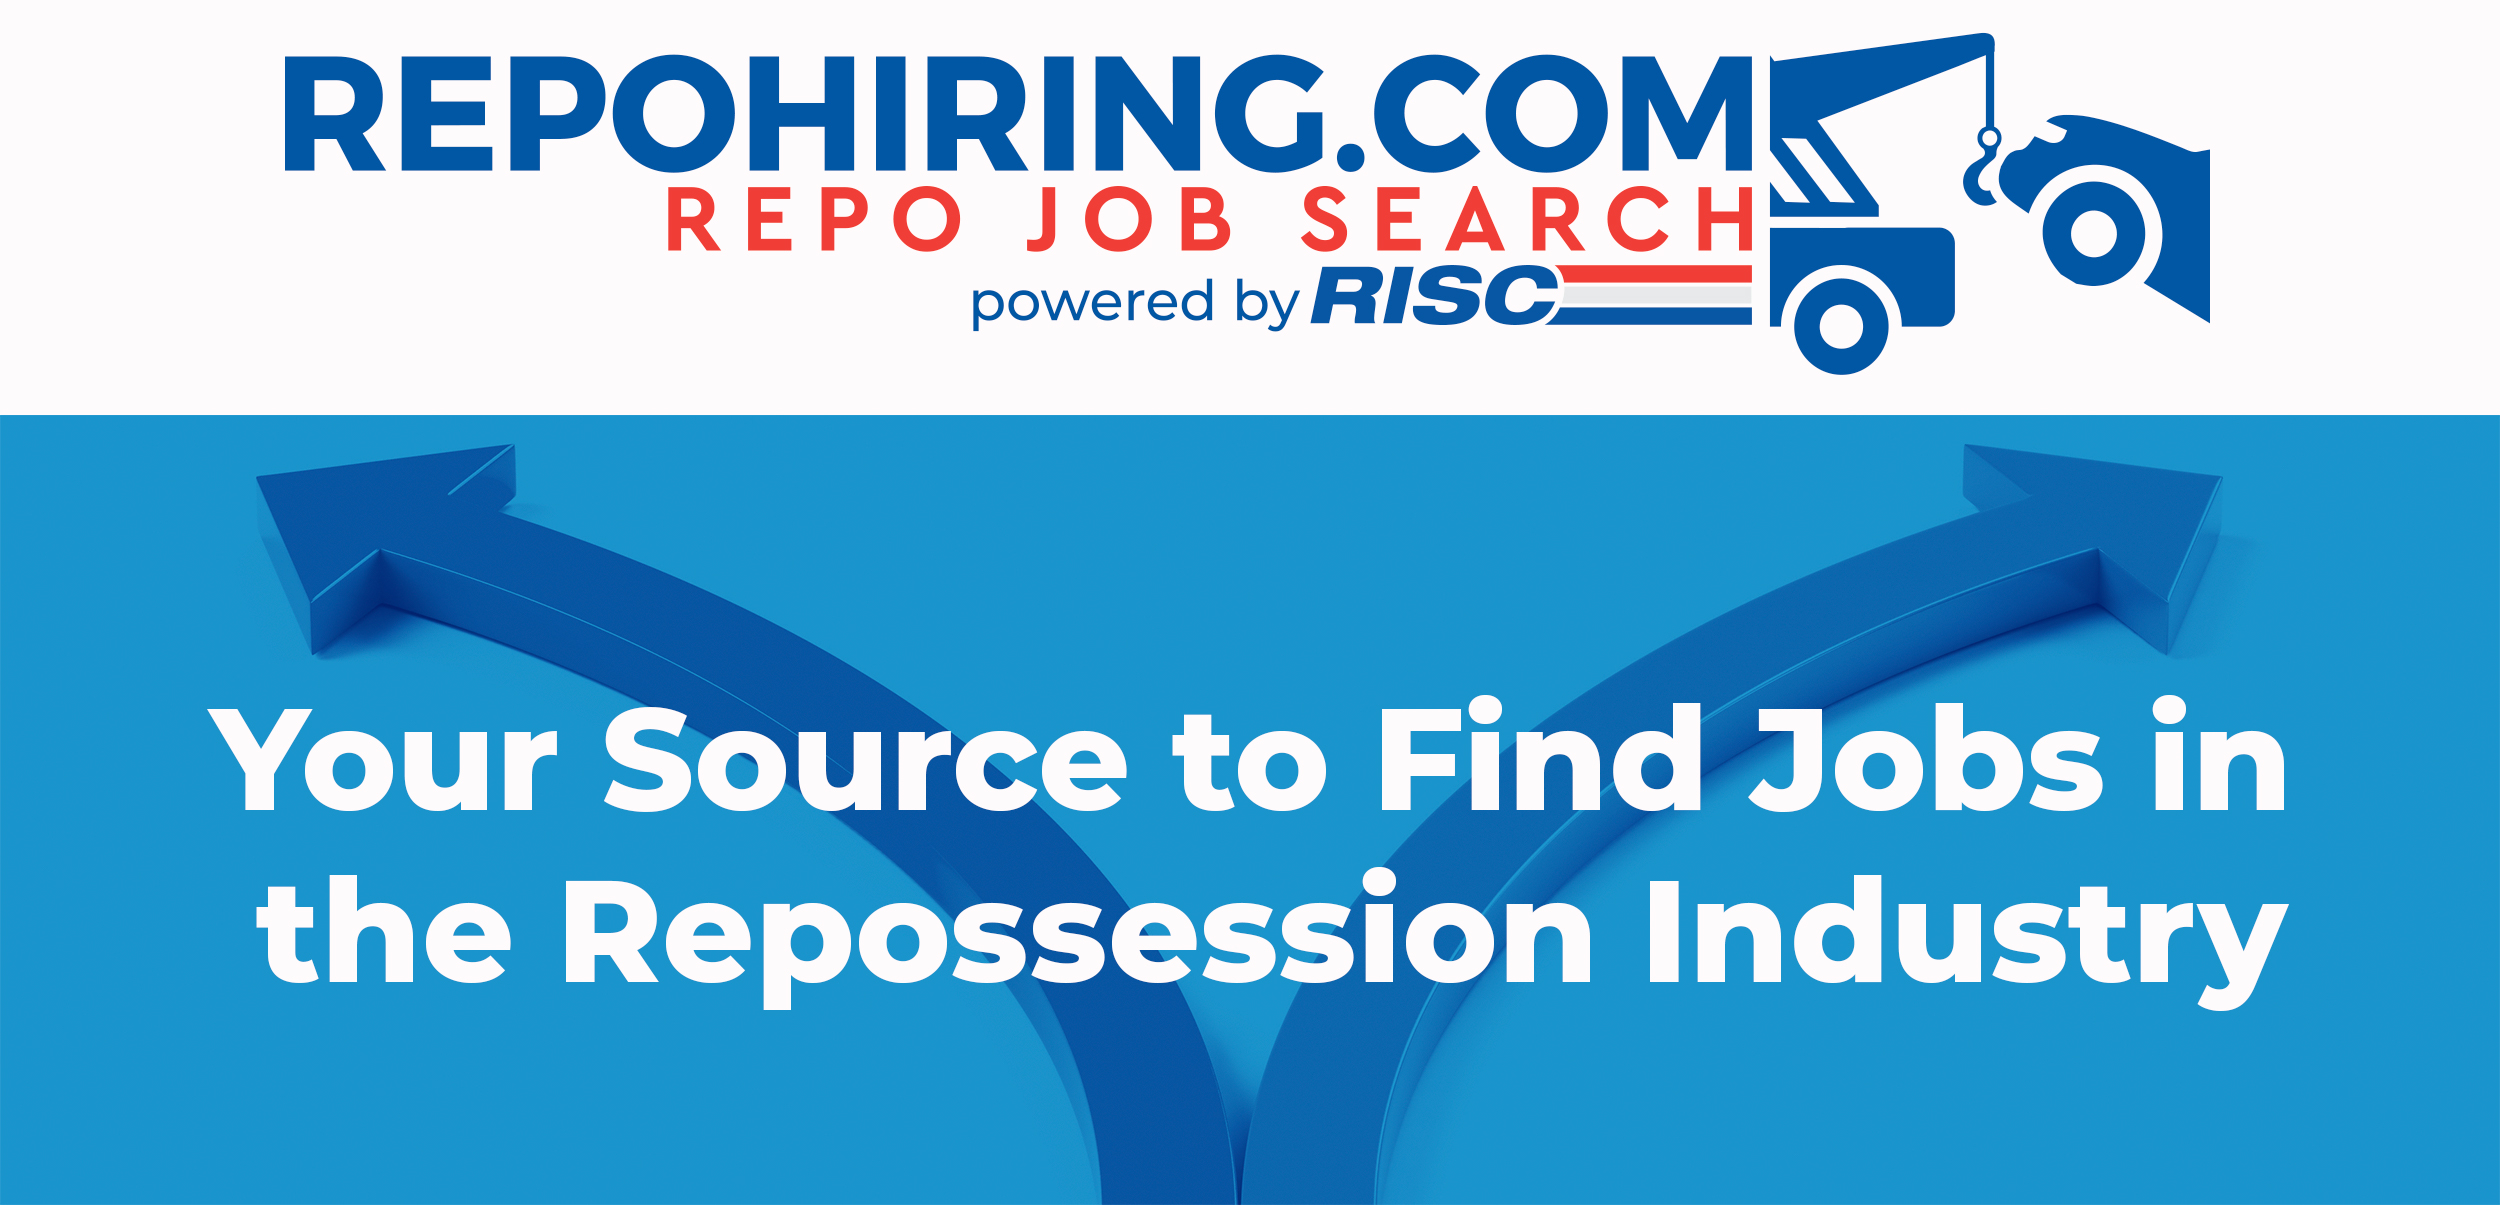 RISC LAUNCHES EMPLOYMENT SITE FOR THE REPOSSESSION INDUSTRY